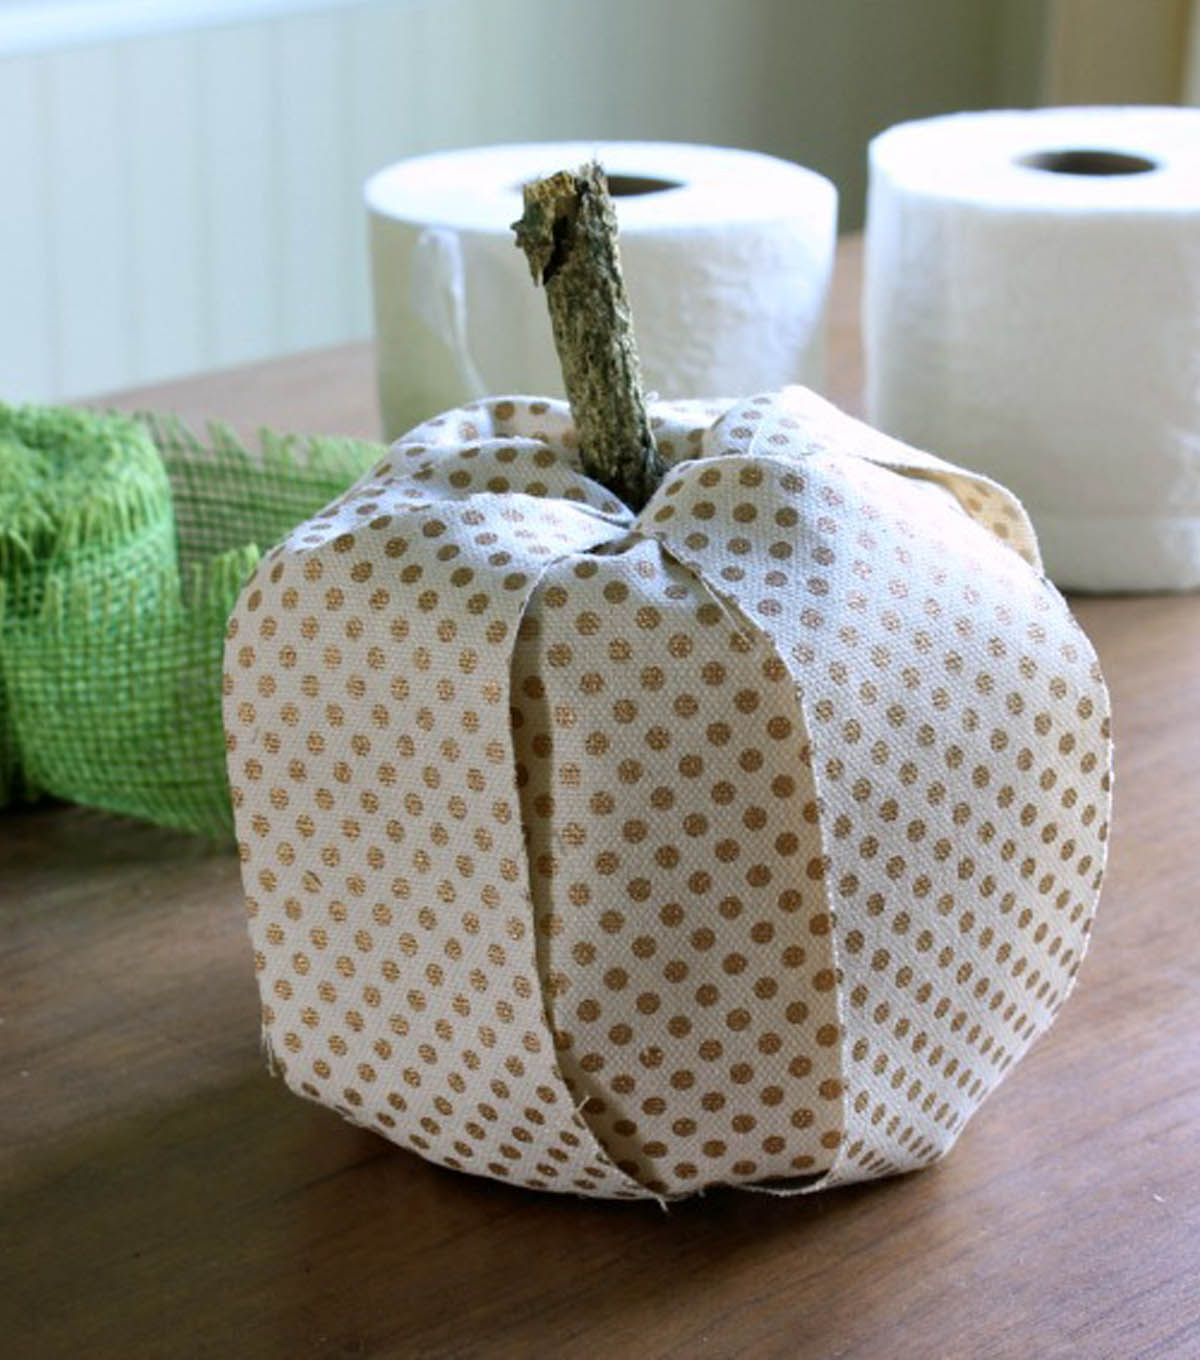 Daisy Mae Belle\u0027s Toilet Paper Roll and Ribbon Pumpkins